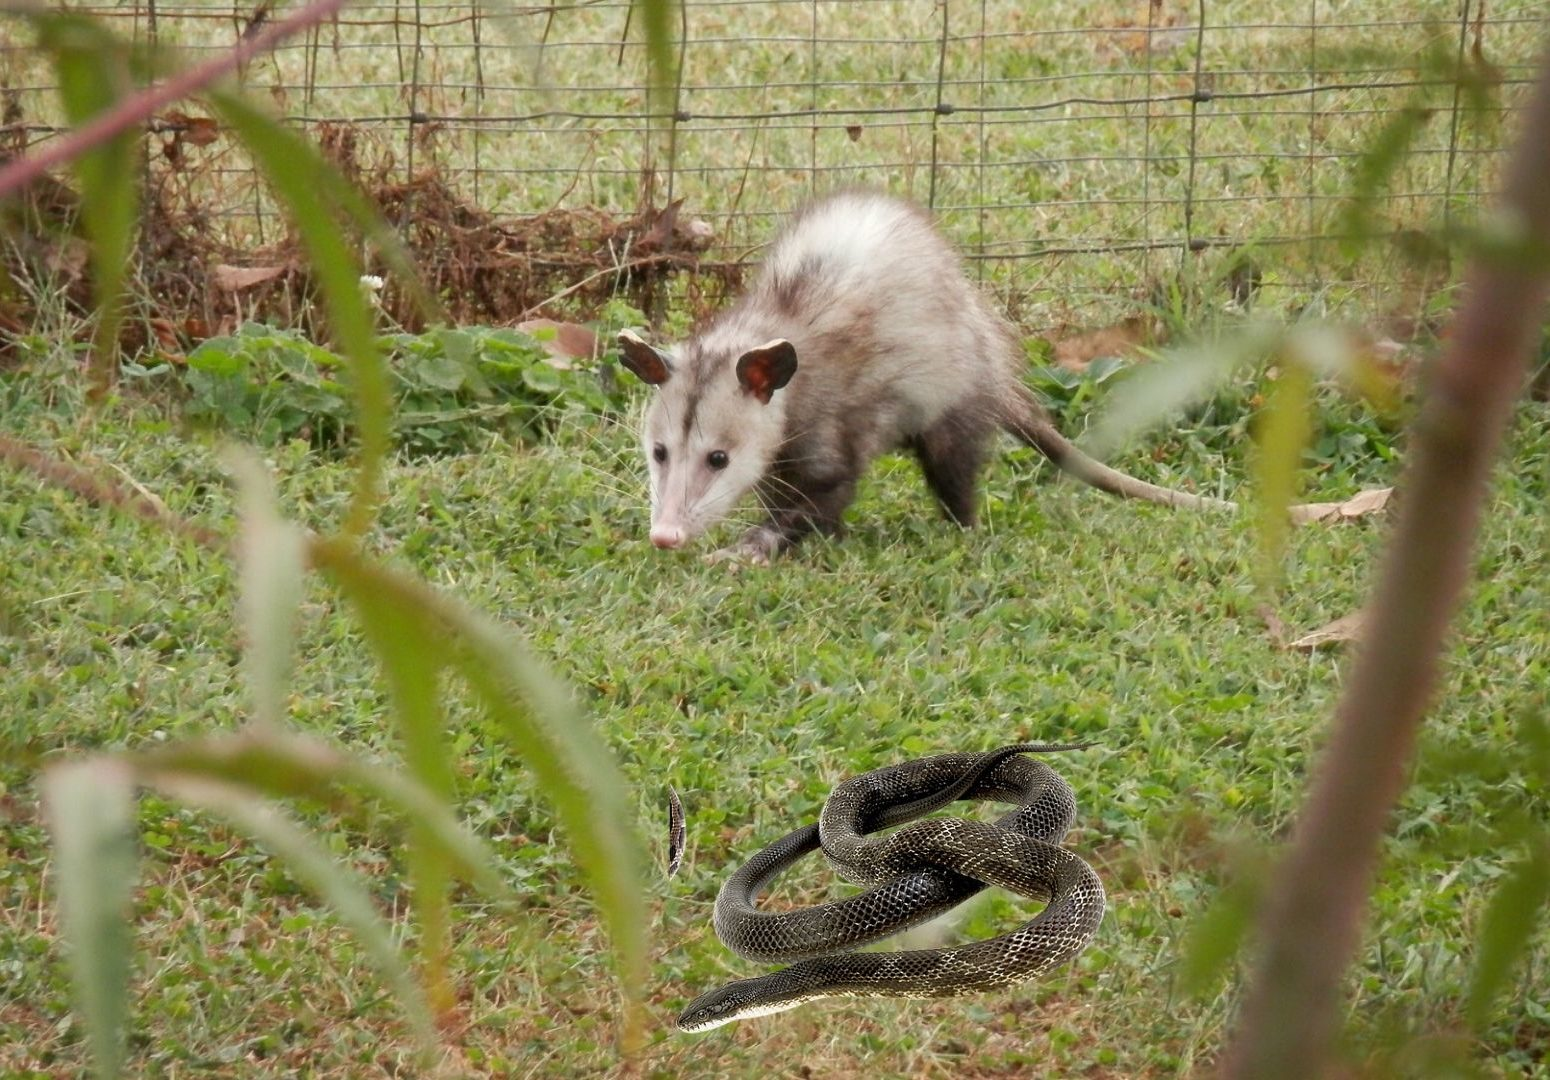 Do possums eat snakes